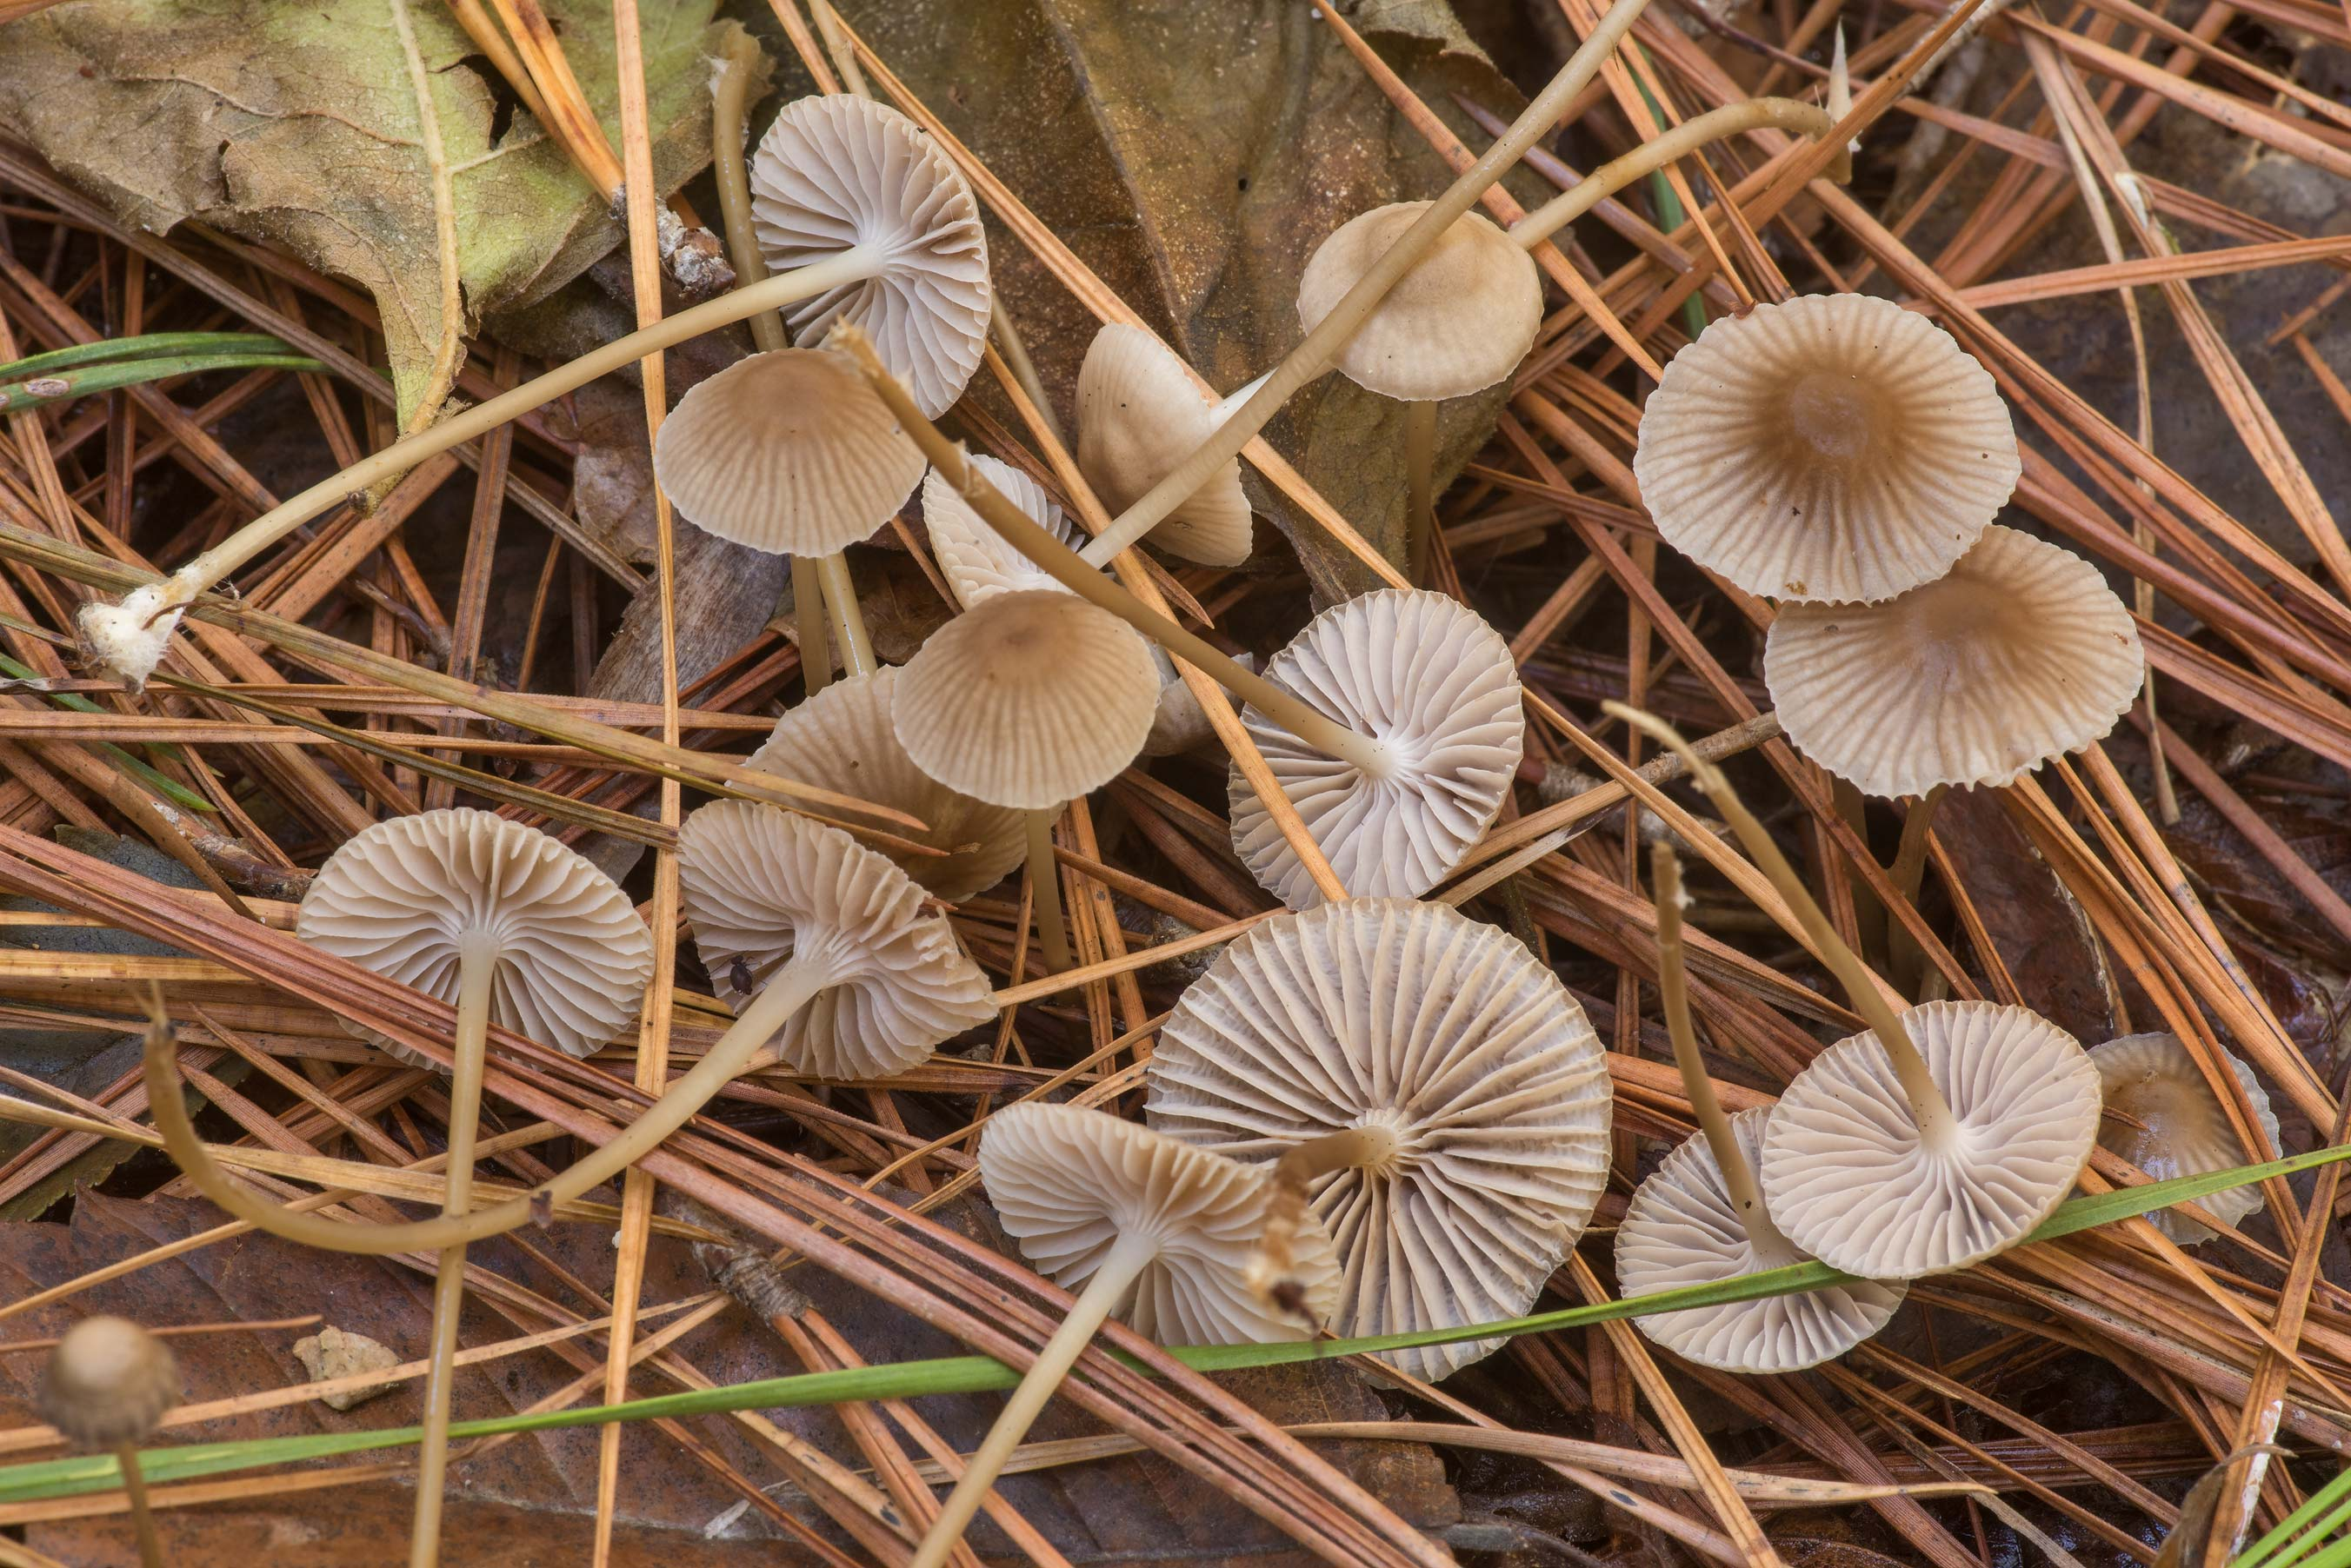 Mushrooms with slippery stems Mycena clavicularis...National Forest. Shepherd, Texas